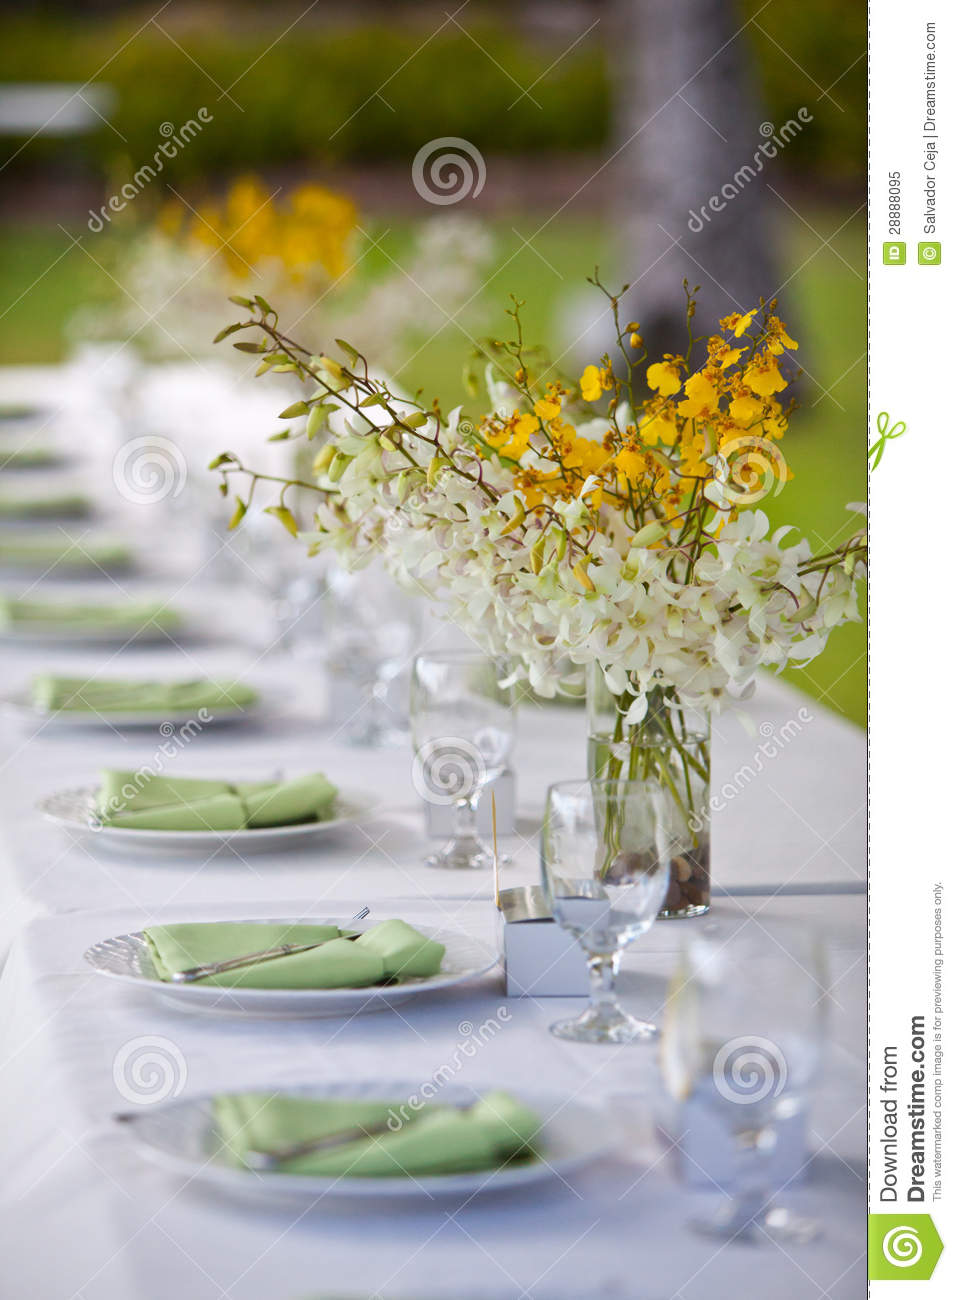 Beach wedding decor table setting and flowers. Dishes chairs. & Beach Wedding Decor Table Setting And Flowers Stock Image - Image of ...